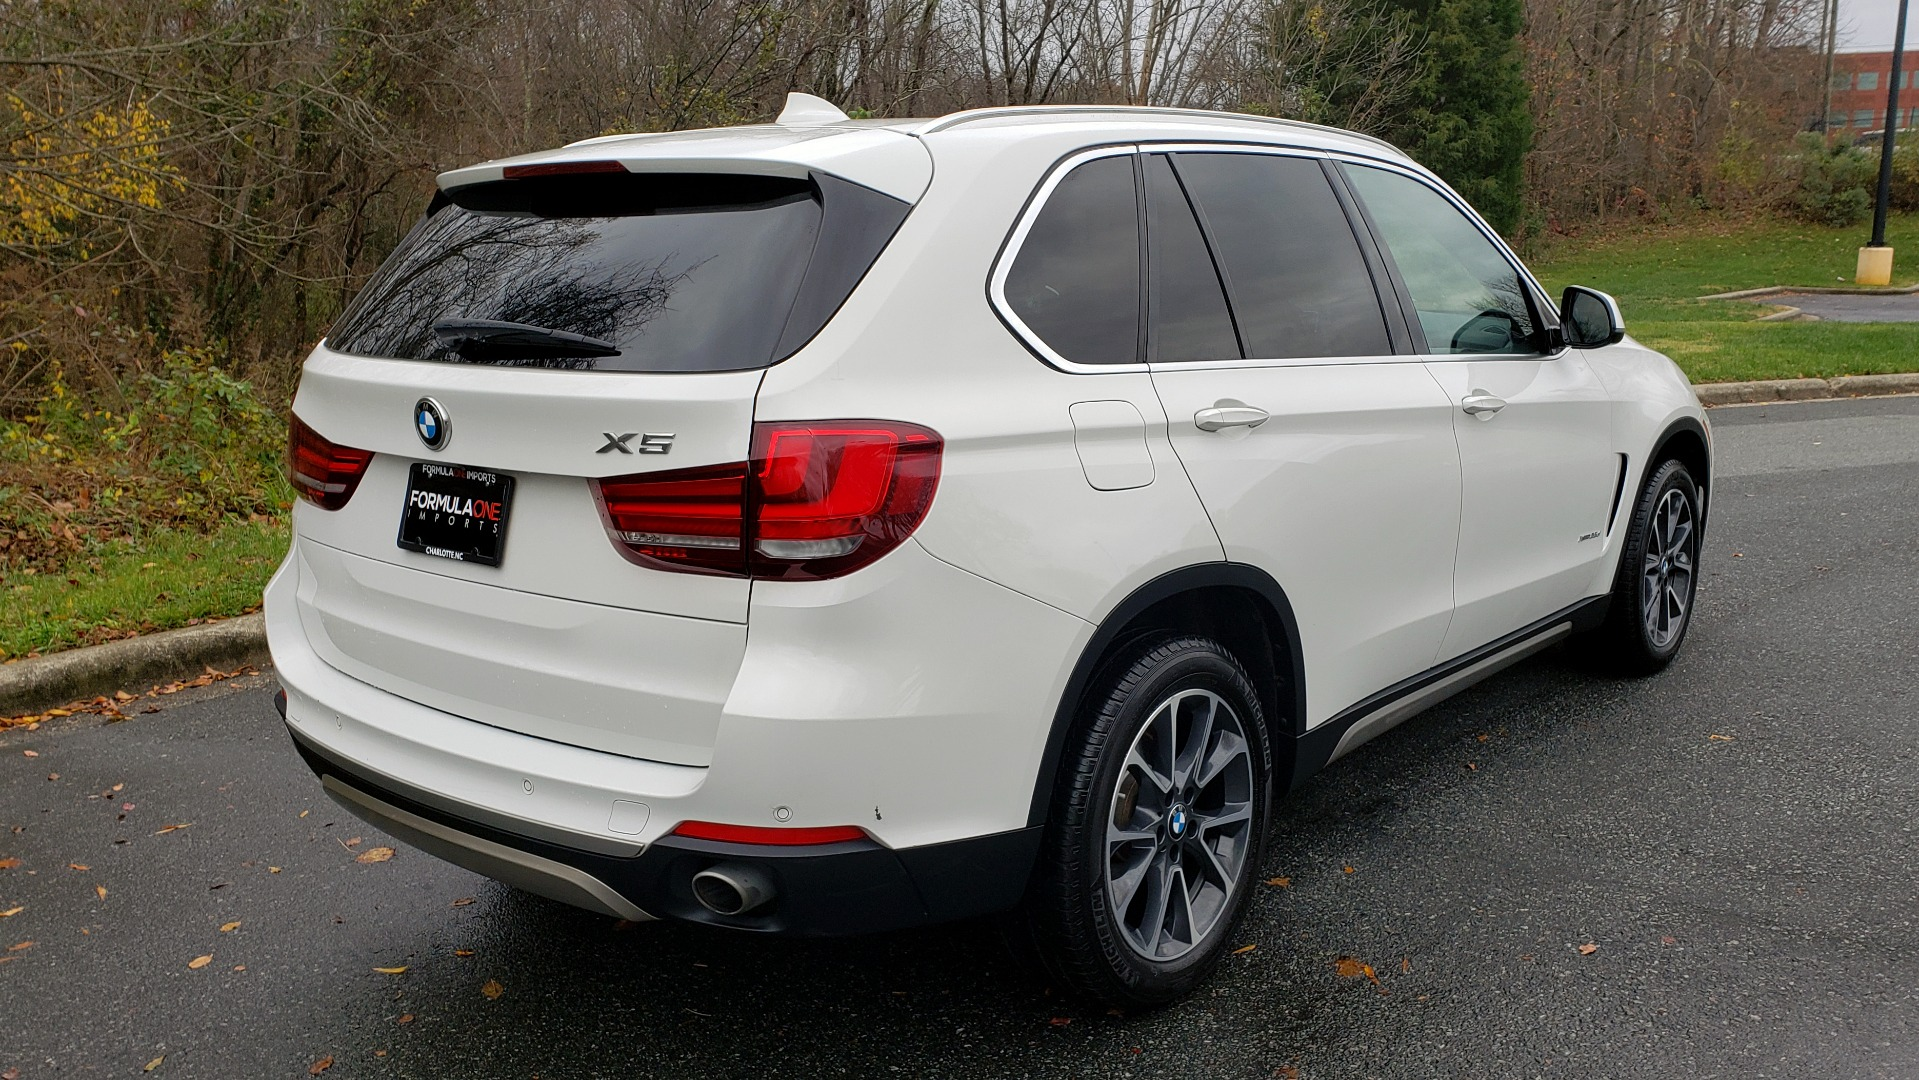 Used 2017 BMW X5 XDRIVE35D / AWD / NAV / DIESEL / SUNROOF / REARVIEW for sale $34,595 at Formula Imports in Charlotte NC 28227 6